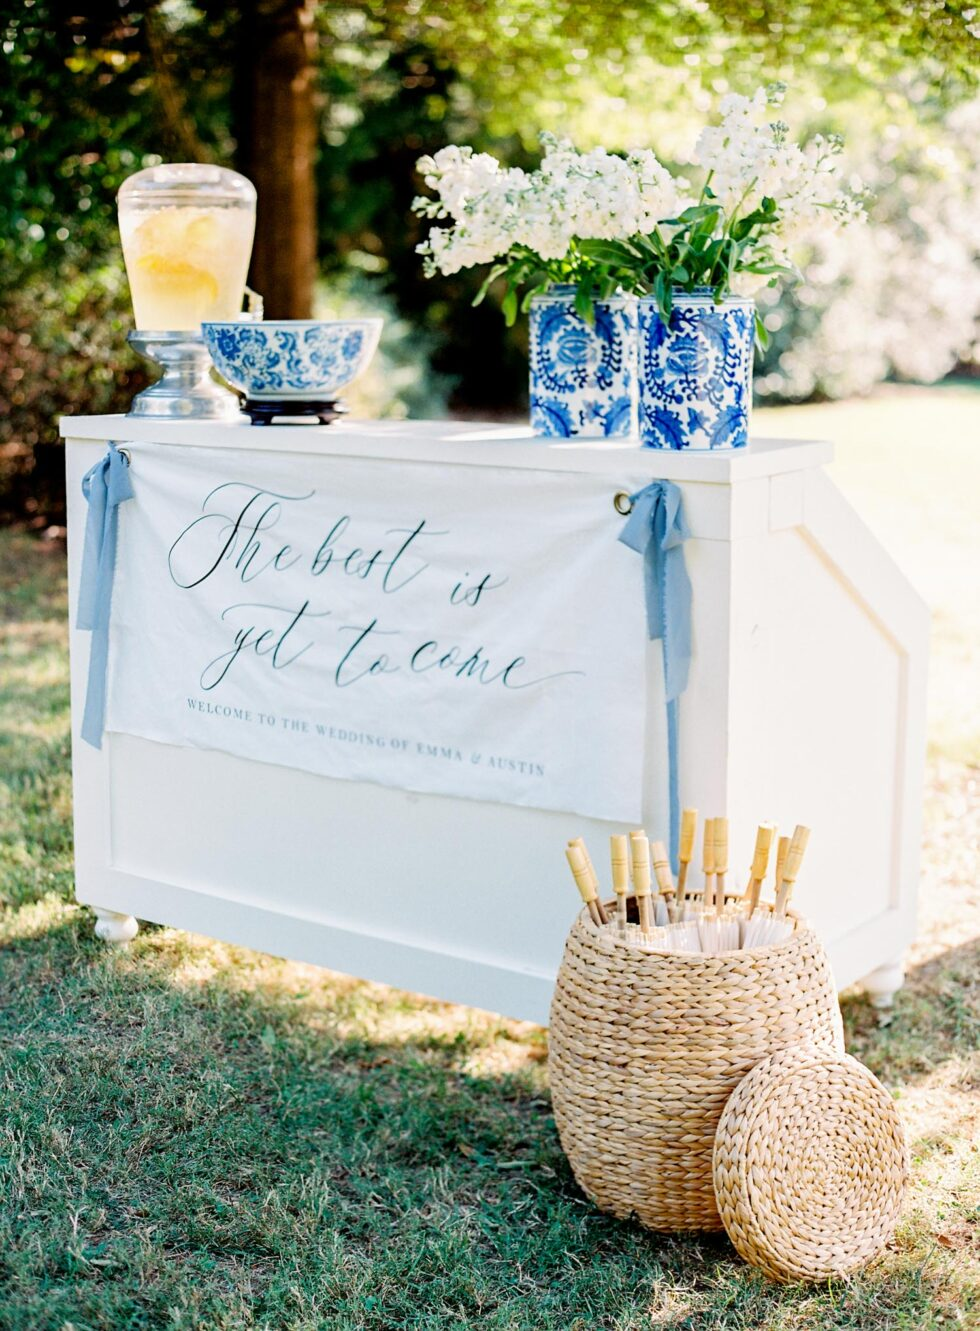 Chinoiserie-Chic-Wedding-The-Prettiest-Pieces-13